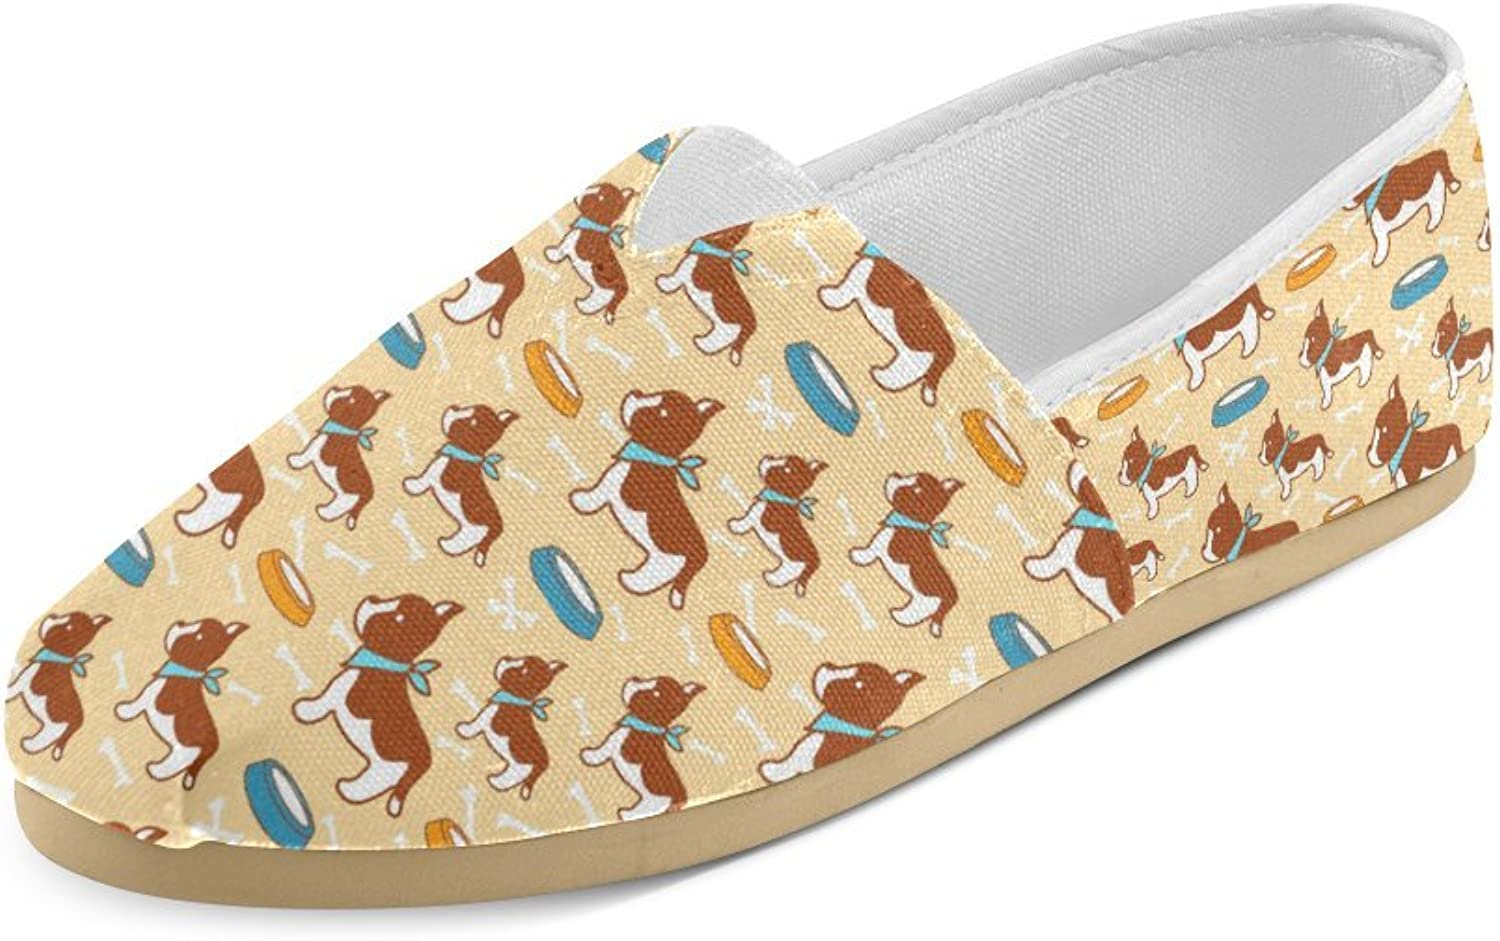 HUANGDAISY Unisex shoes Dog Drinking Background Casual Canvas Loafers for Bia Kids Girl Or Men